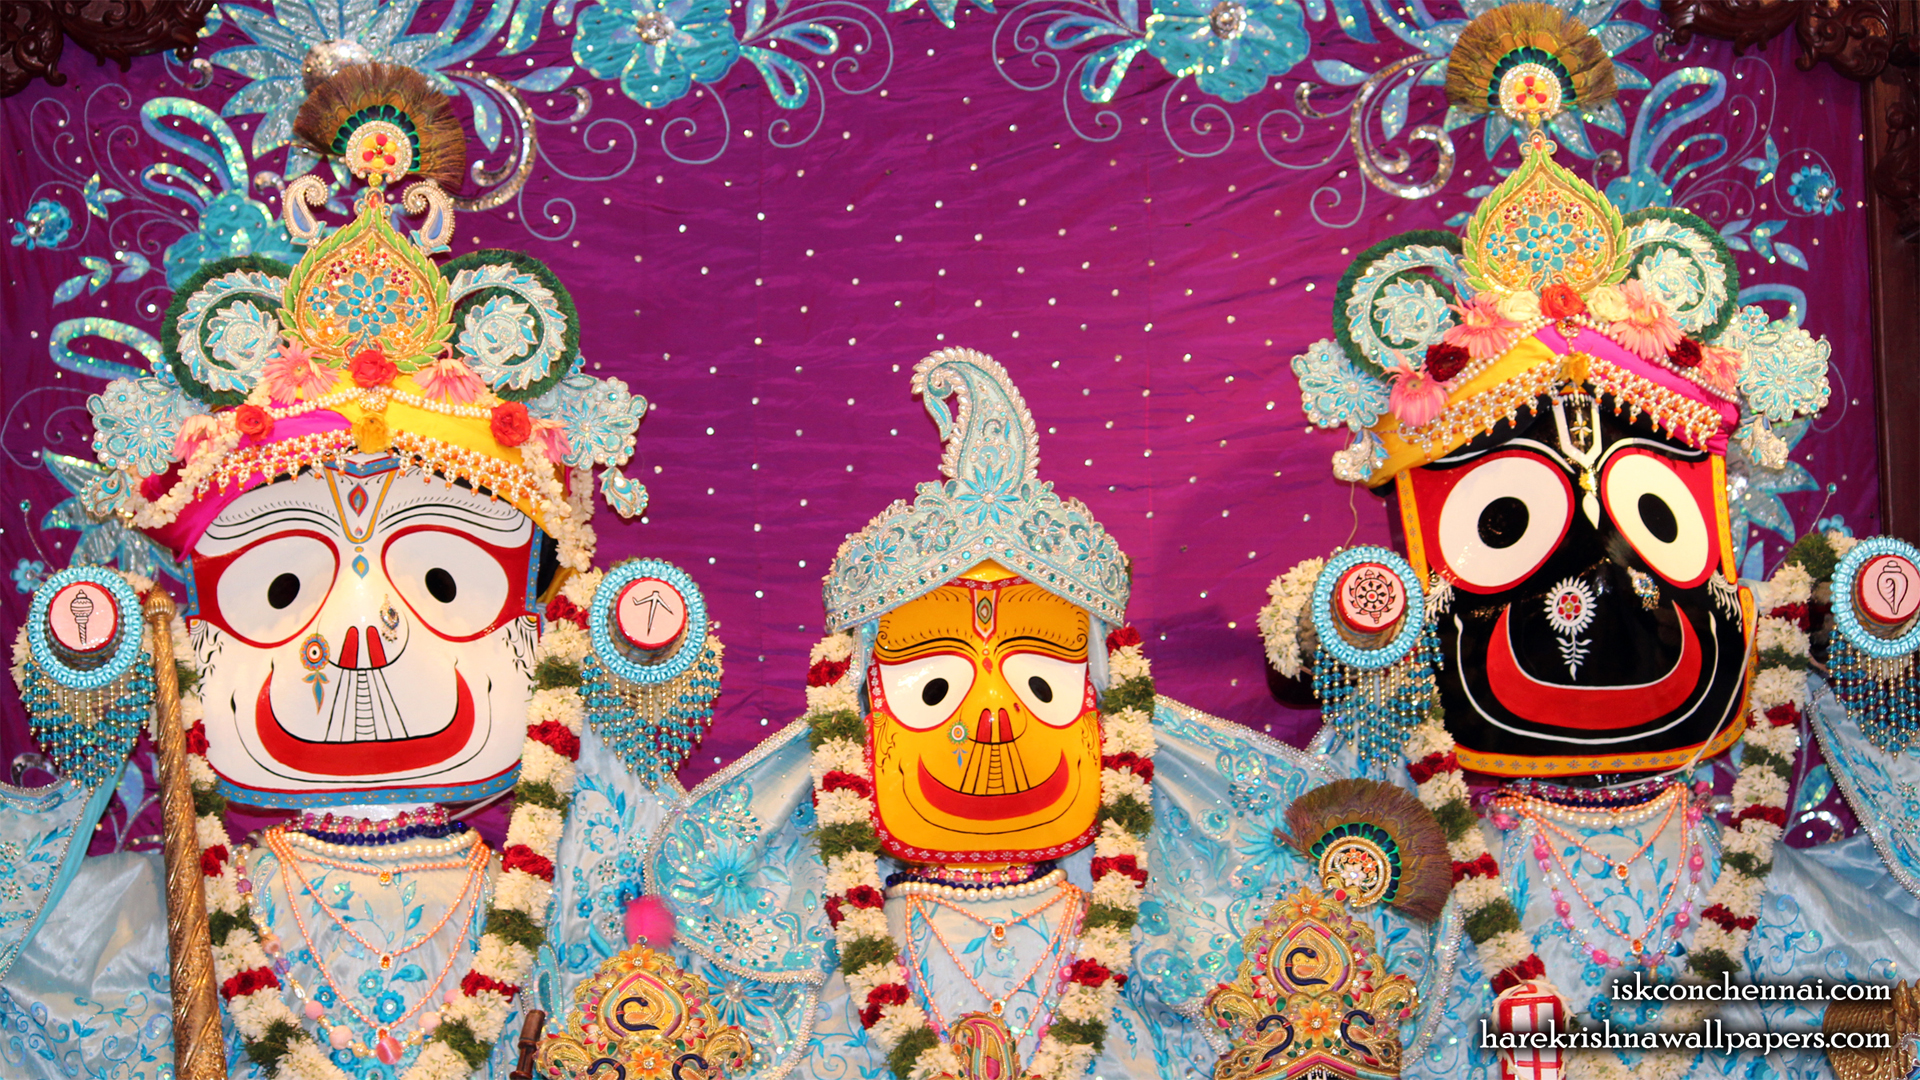 Jagannath Baladeva Subhadra Wallpaper (001) Size 1920x1080 Download